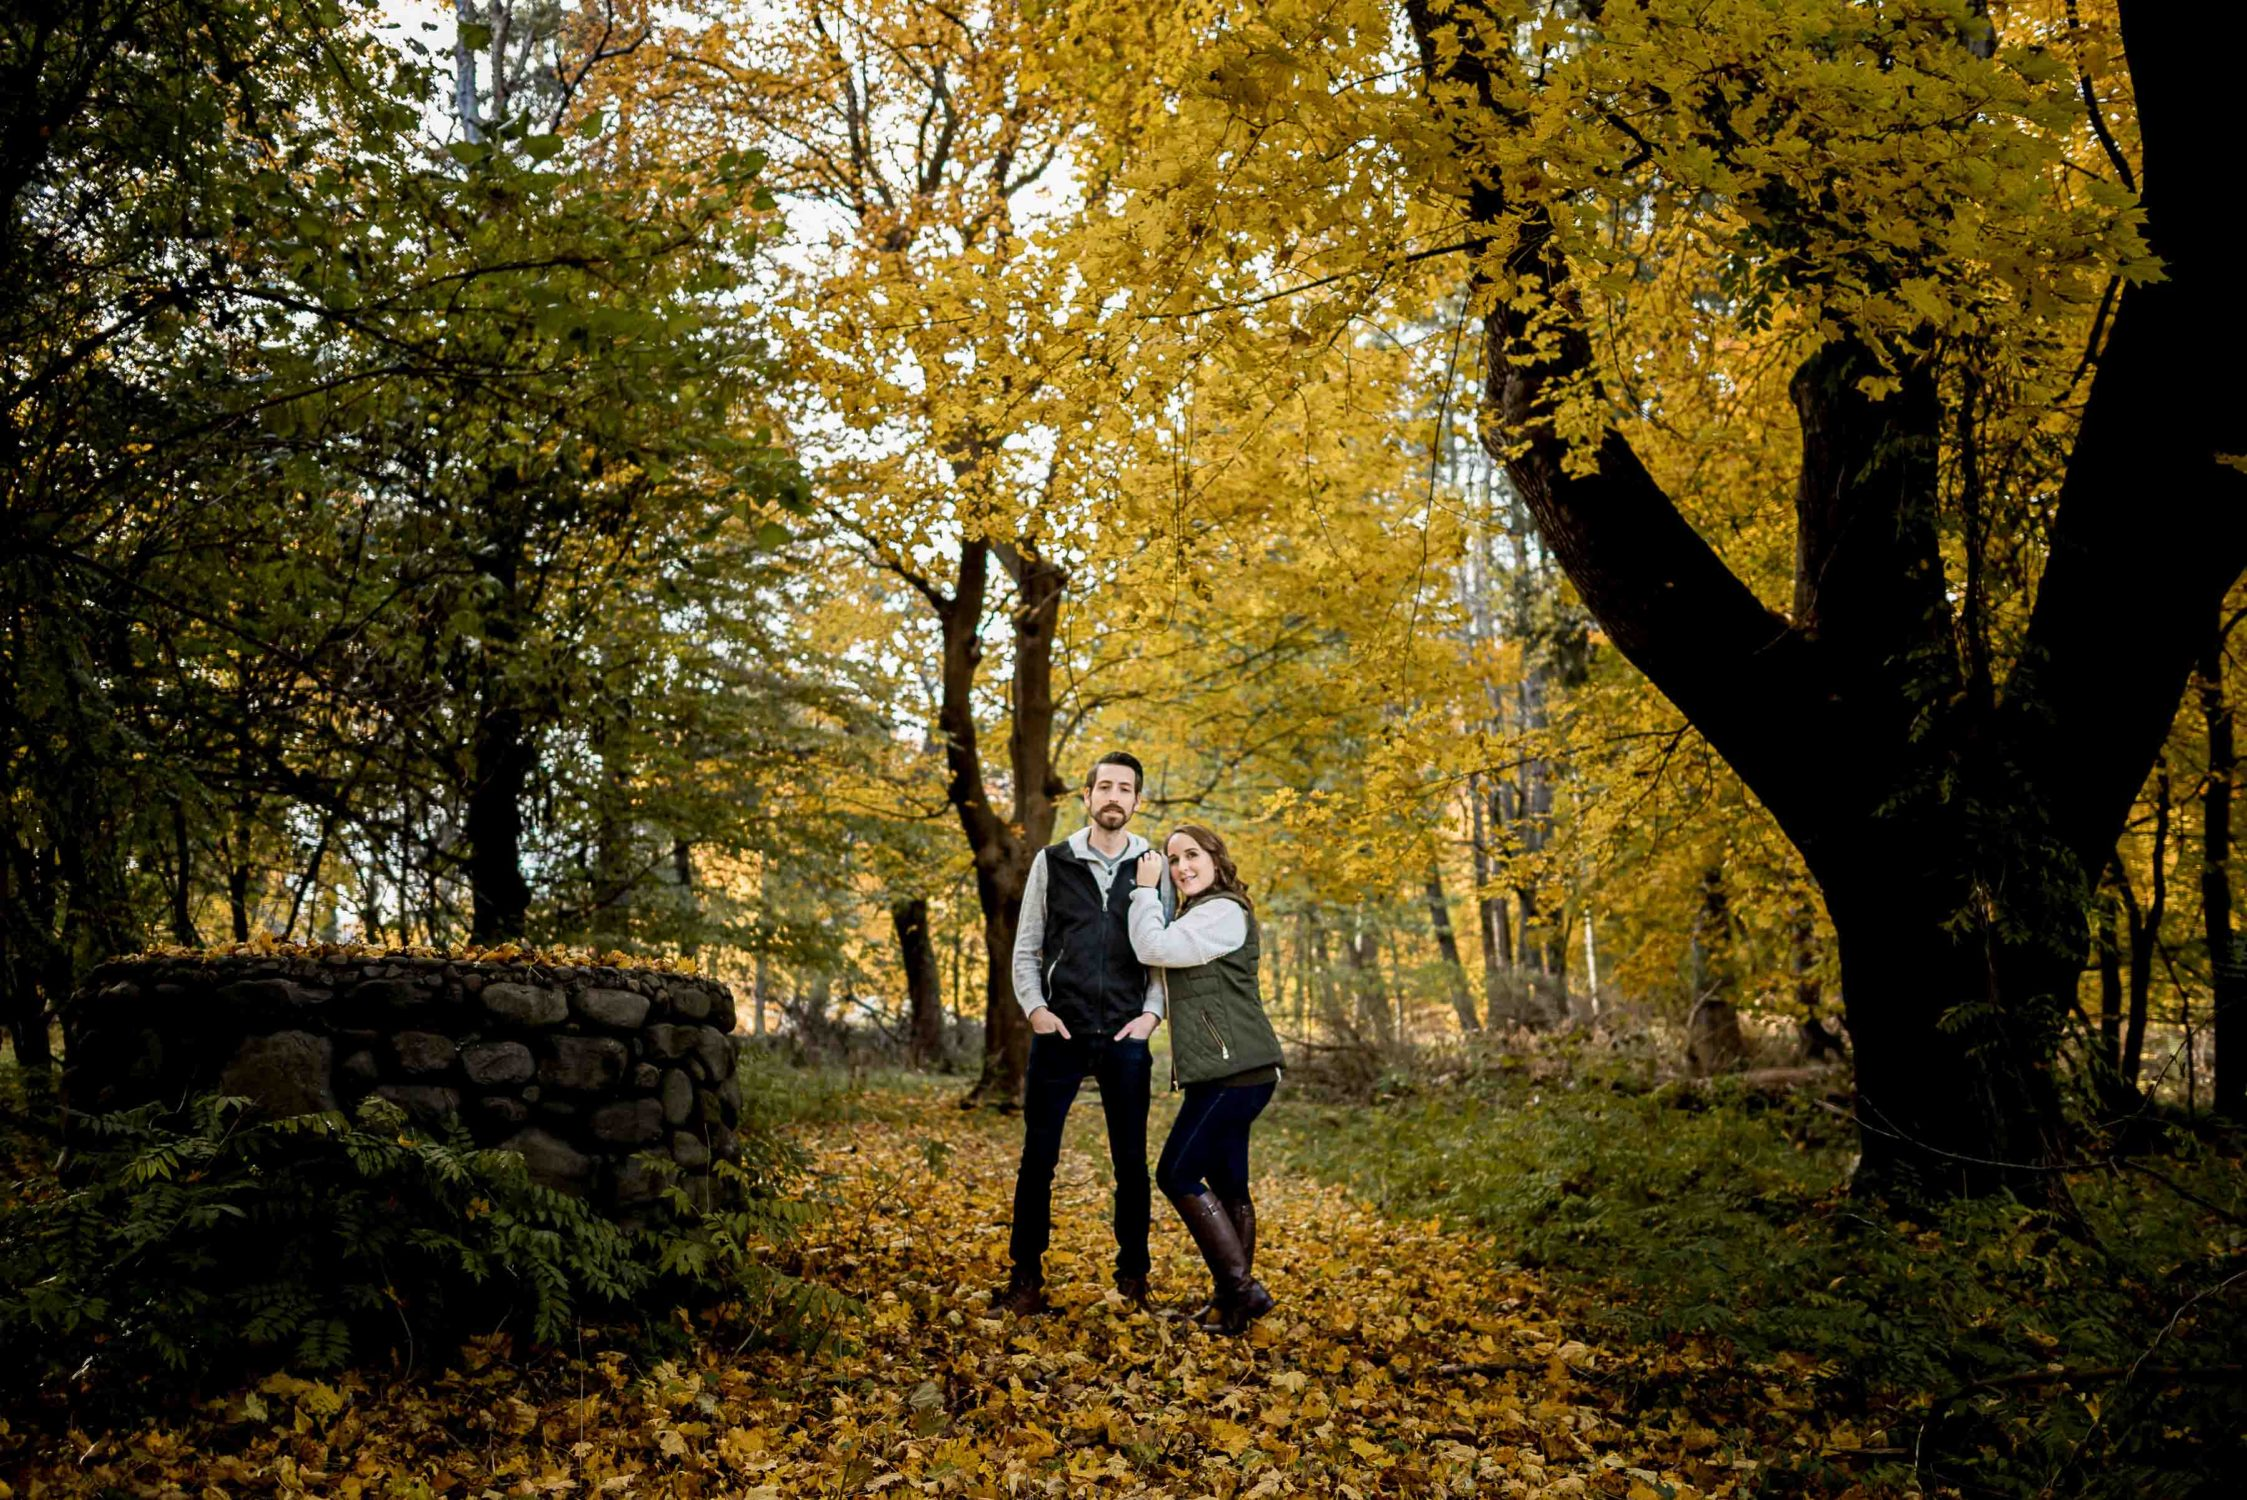 Fall golden yellow leaves with couple on path by old well